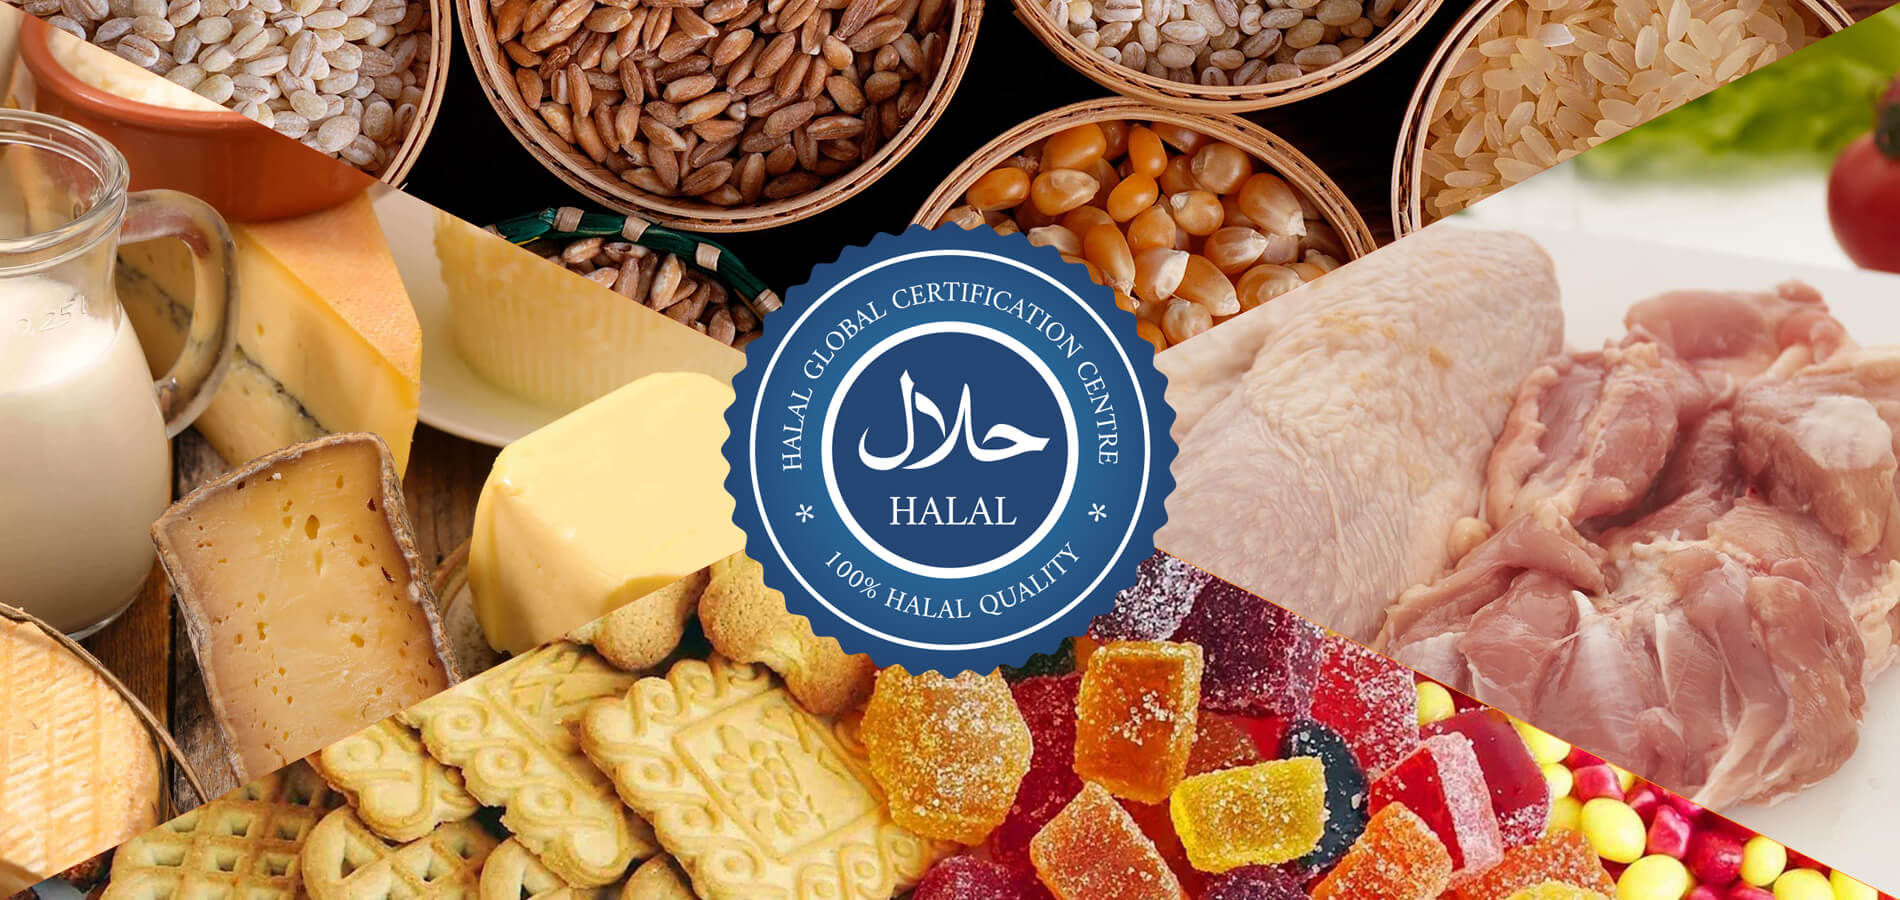 International certification organization of food products for standard Halal of Ukraine Our aims (Companie's aims)